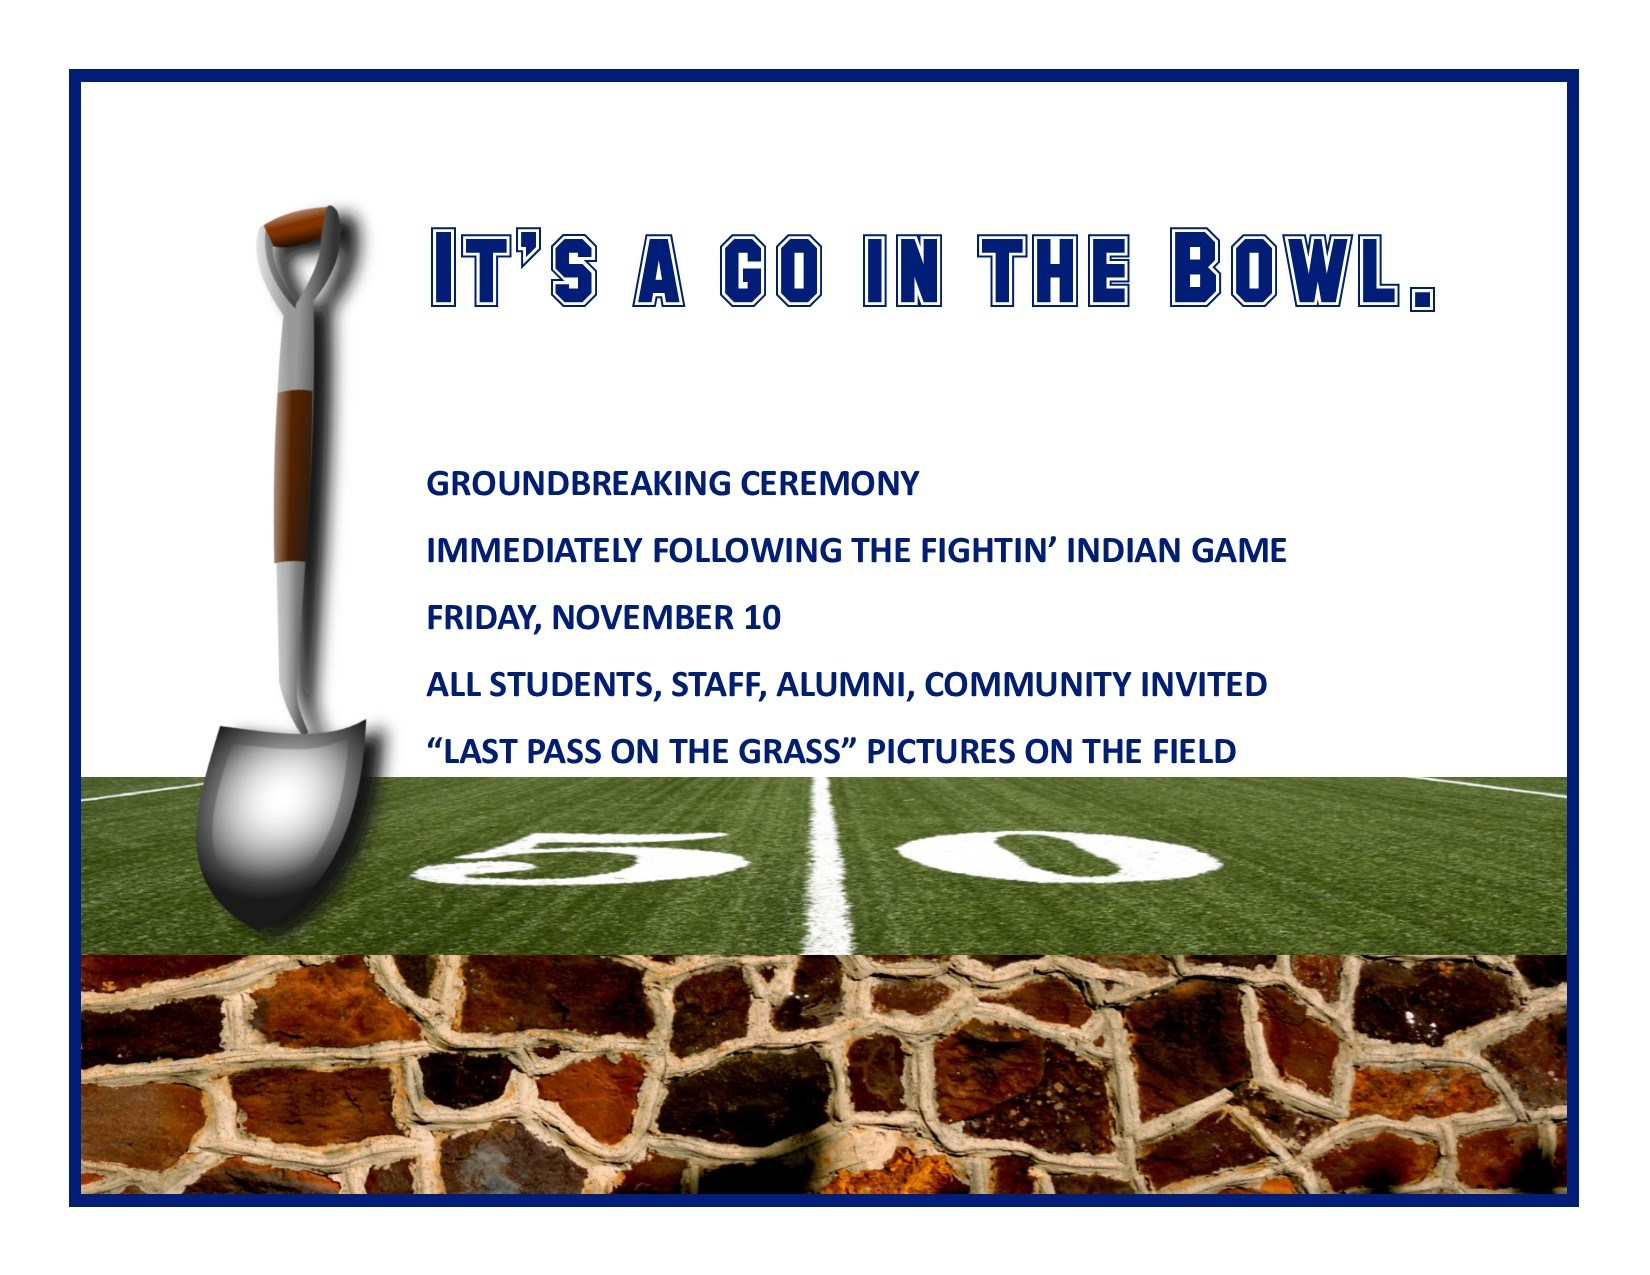 Notice about groundbreaking ceremony on November 10